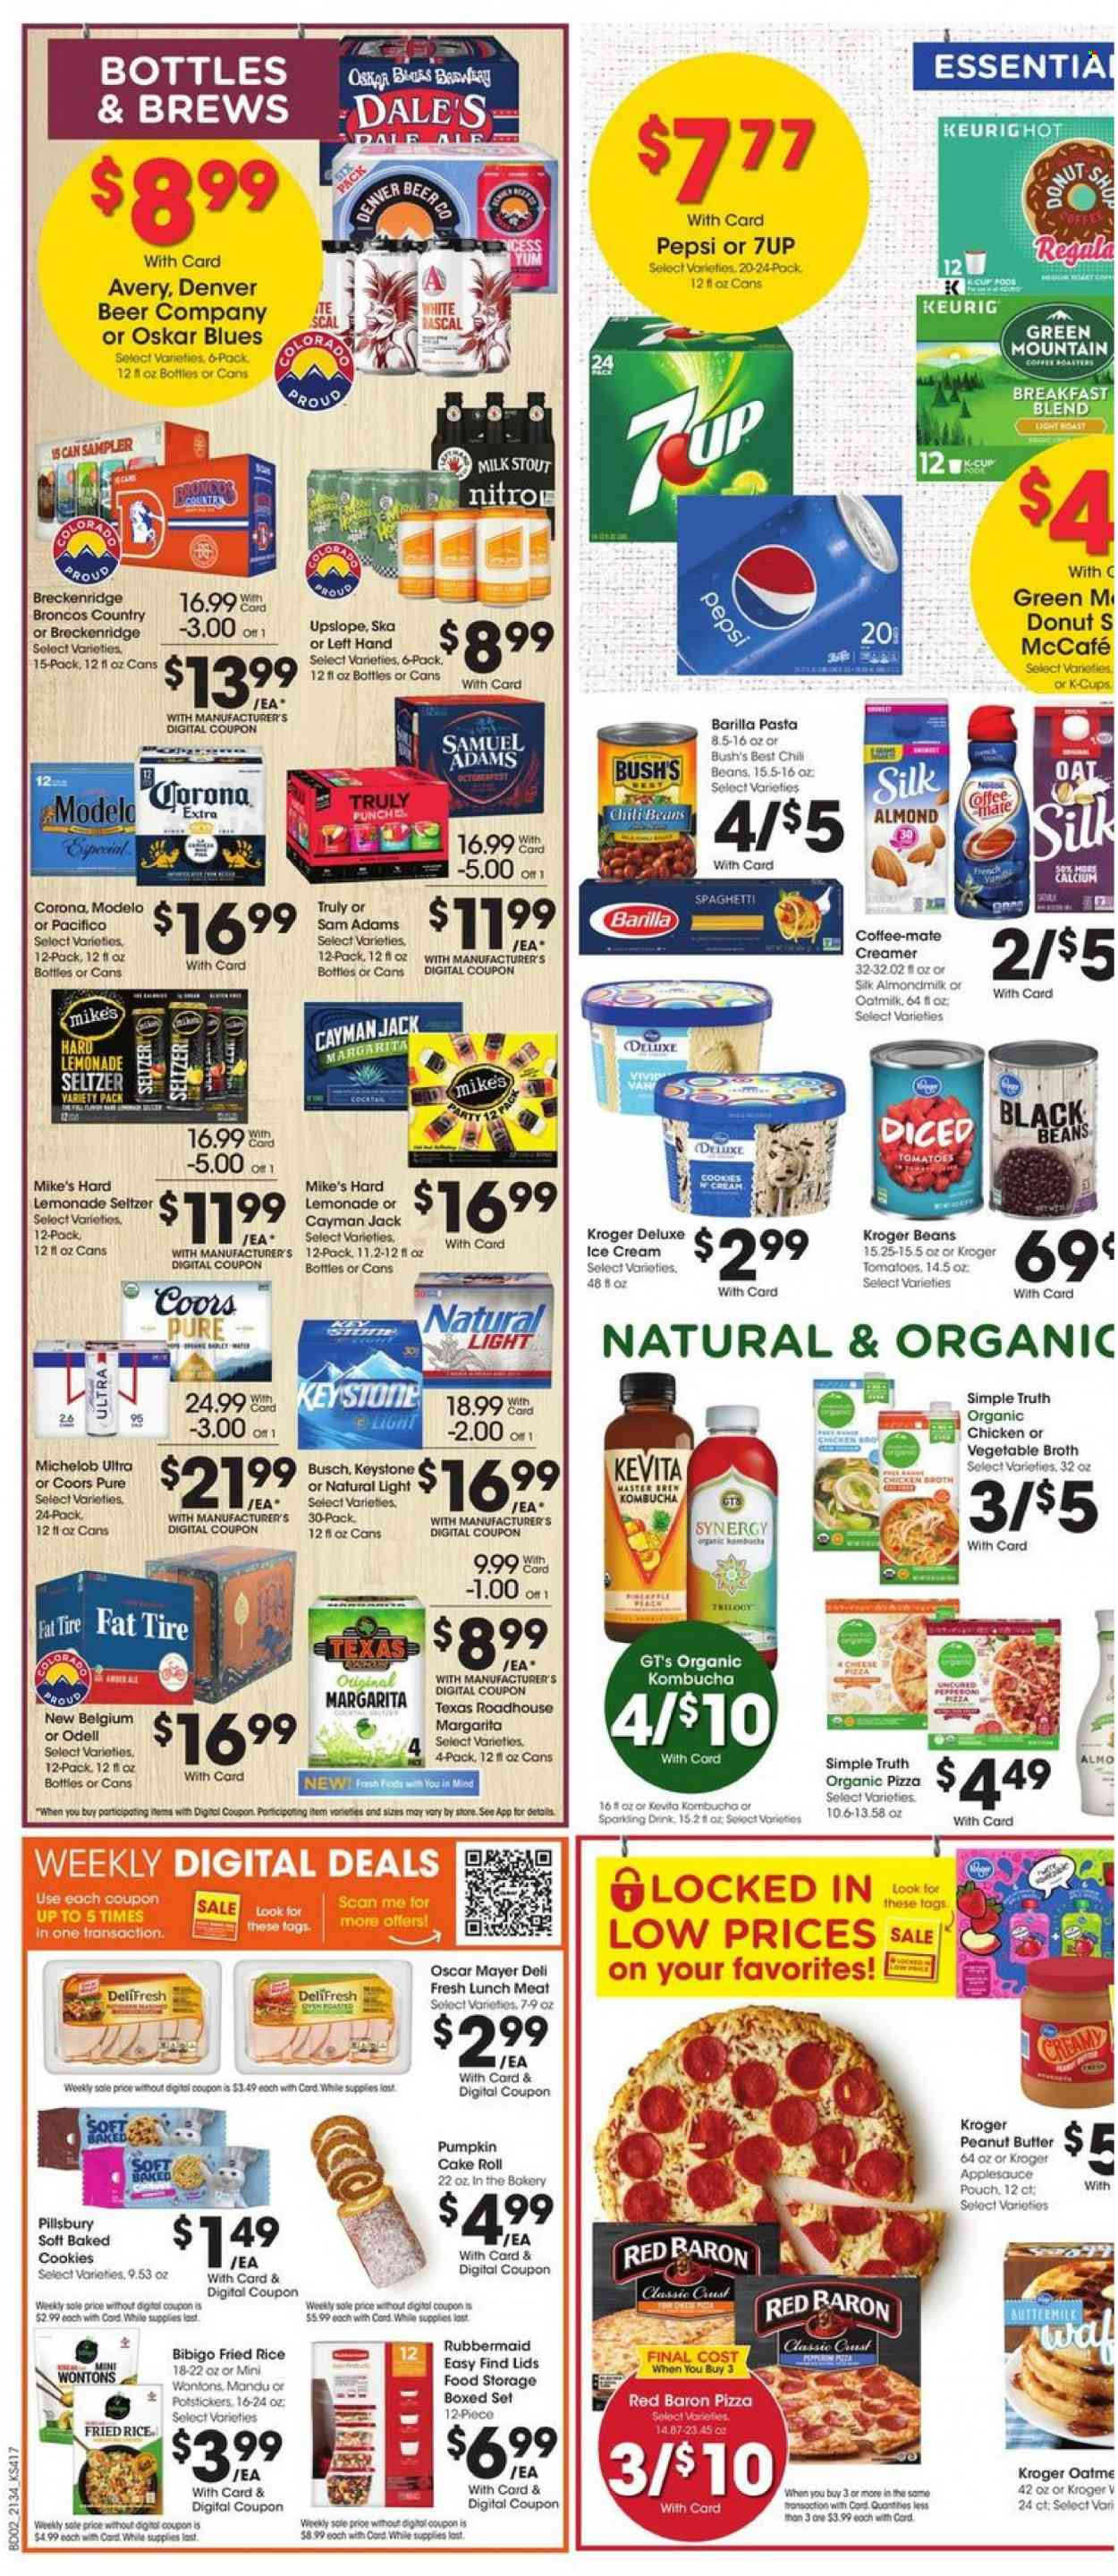 City Market Ad from september 22 to 28 2021 - Page 4